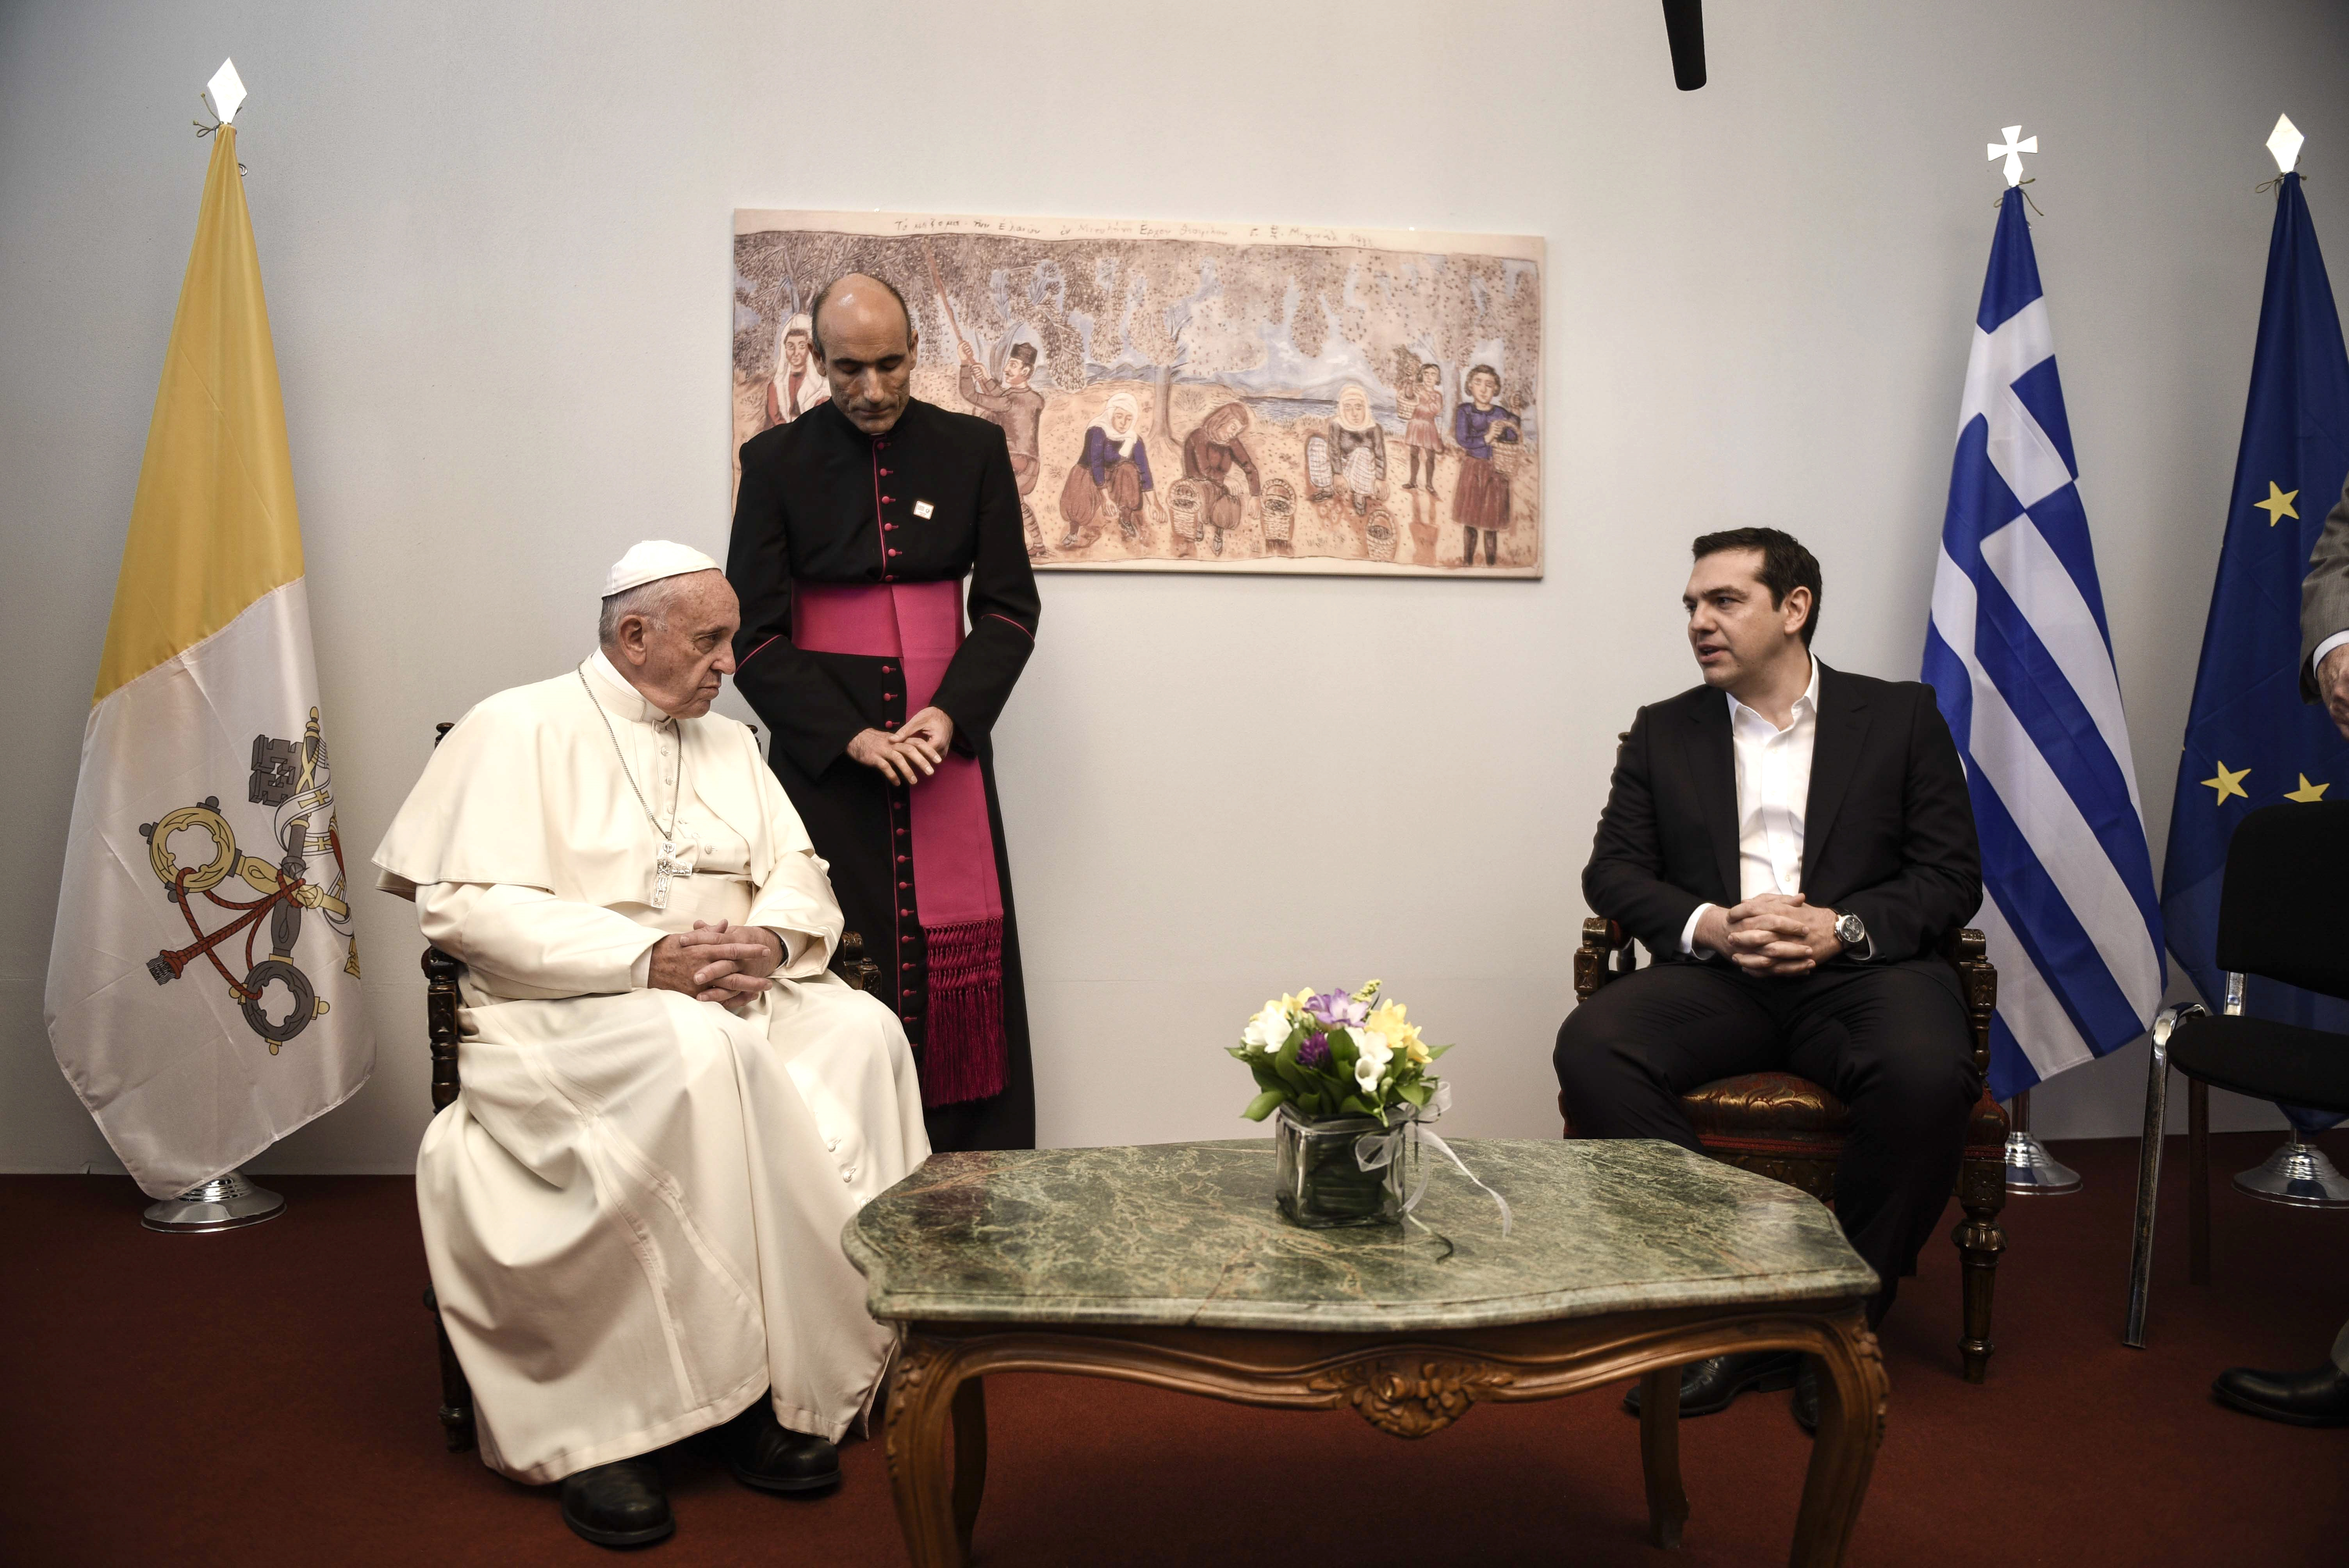 In this photo released by Greek Prime Minister's office on Saturday, Apr. 16, 2016, Greece's Prime Minister Alexis Tsipras, right, meets visiting Pope Francis after his arrival on the island of Lesbos. Pope Francis traveled to Greece on Saturday for a brief but provocative visit to meet with refugees at a detention center as the European Union implements a controversial plan to deport them back to Turkey. (Andrea Bonetti/Greek Prime Minister's Office via AP)